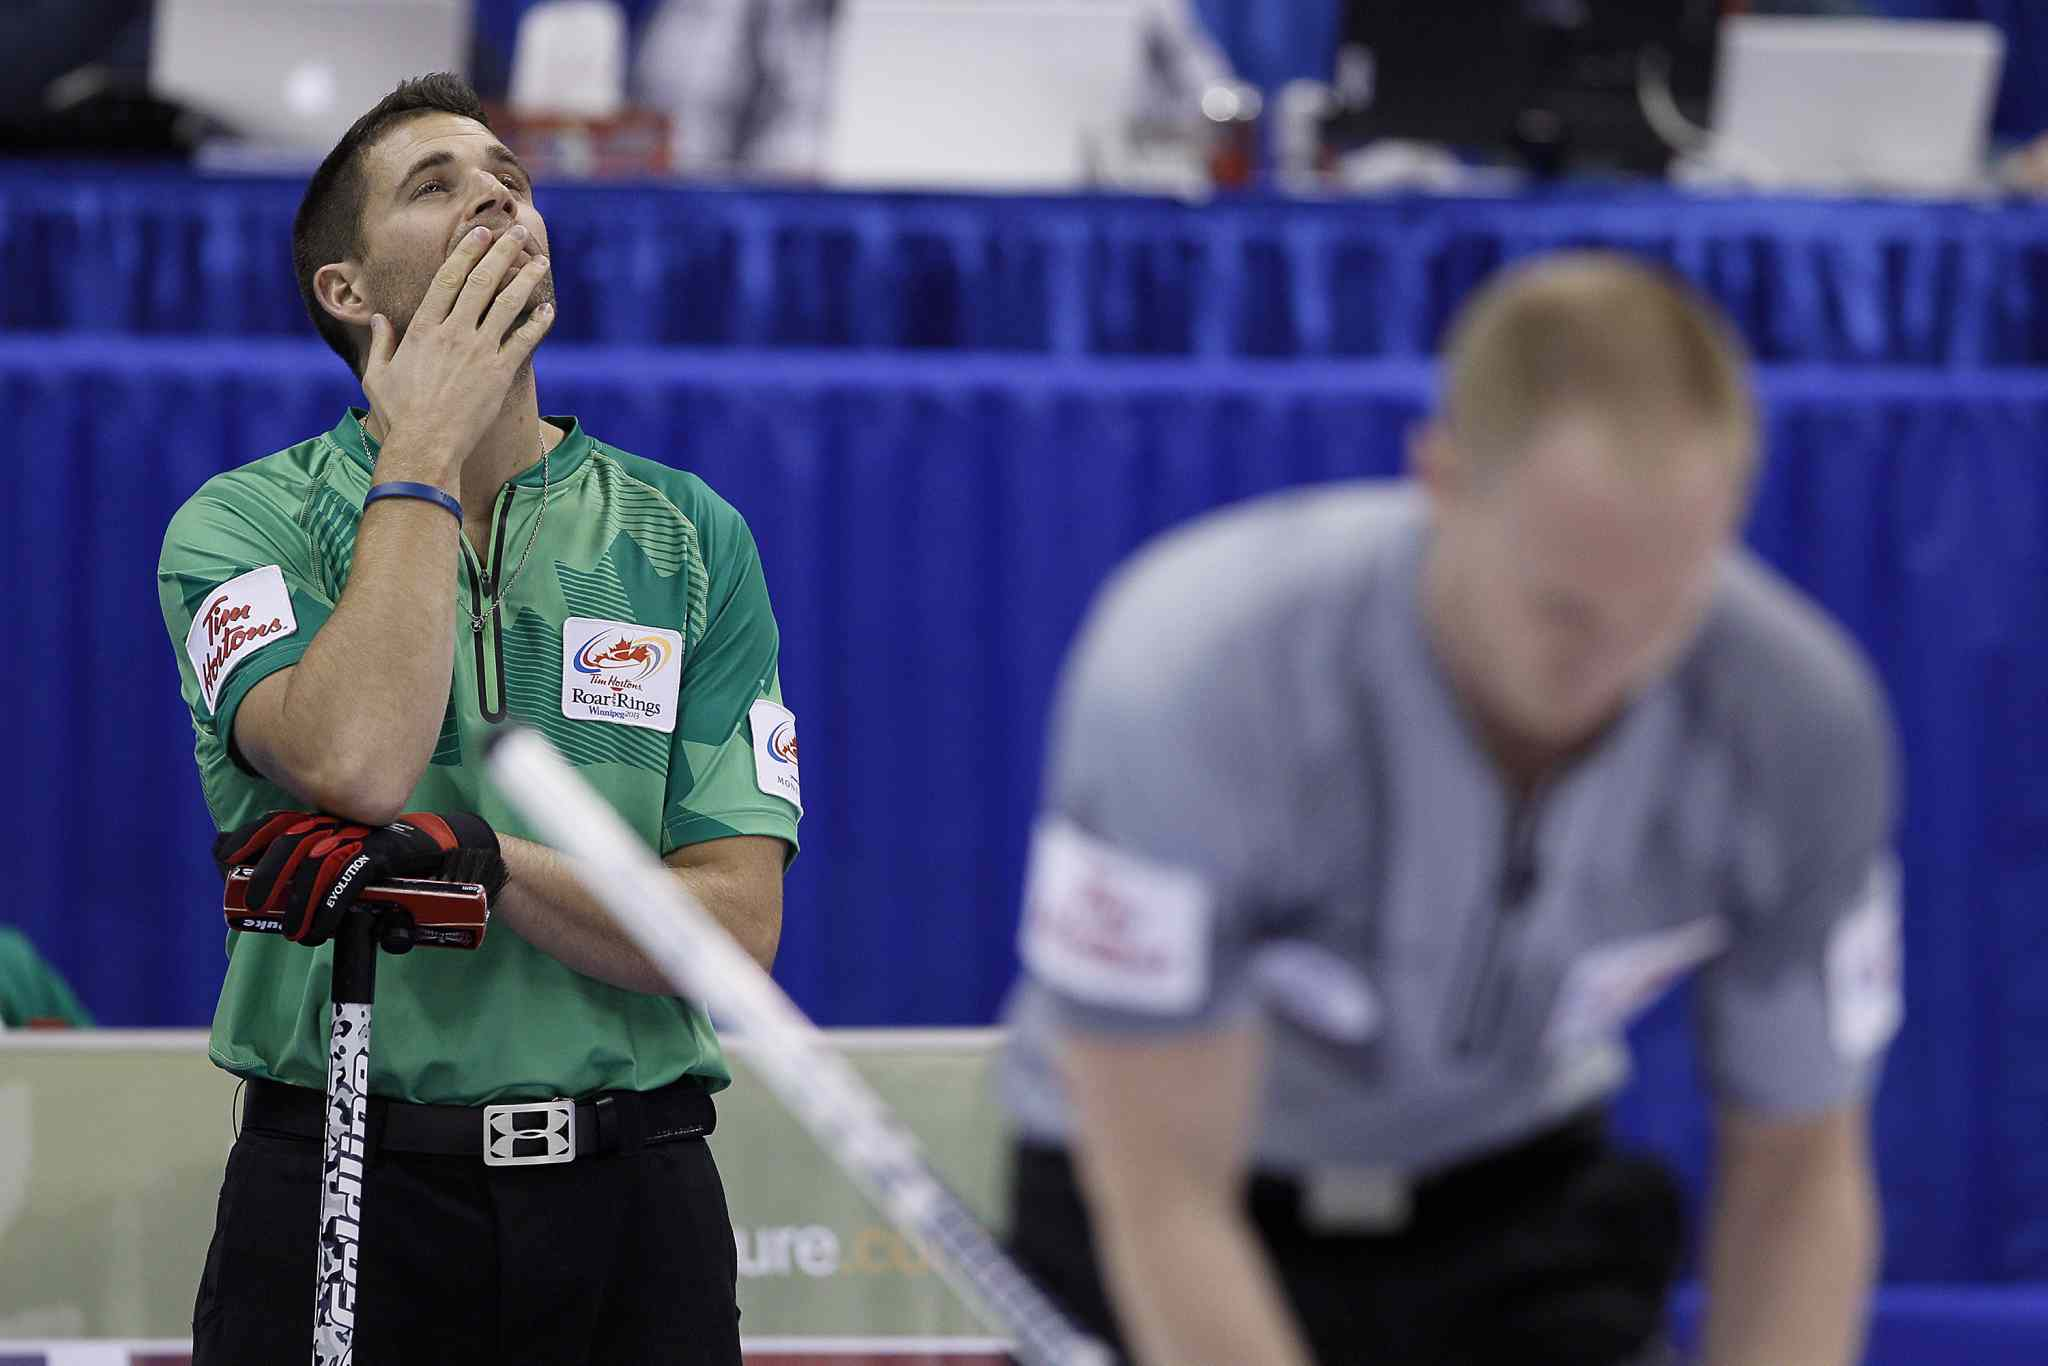 John Morris (left) looks up during the men's final against Brad Jacobs (right) at the 2013 Roar of the Rings Canadian Olympic curling trials in Winnipeg Sunday.